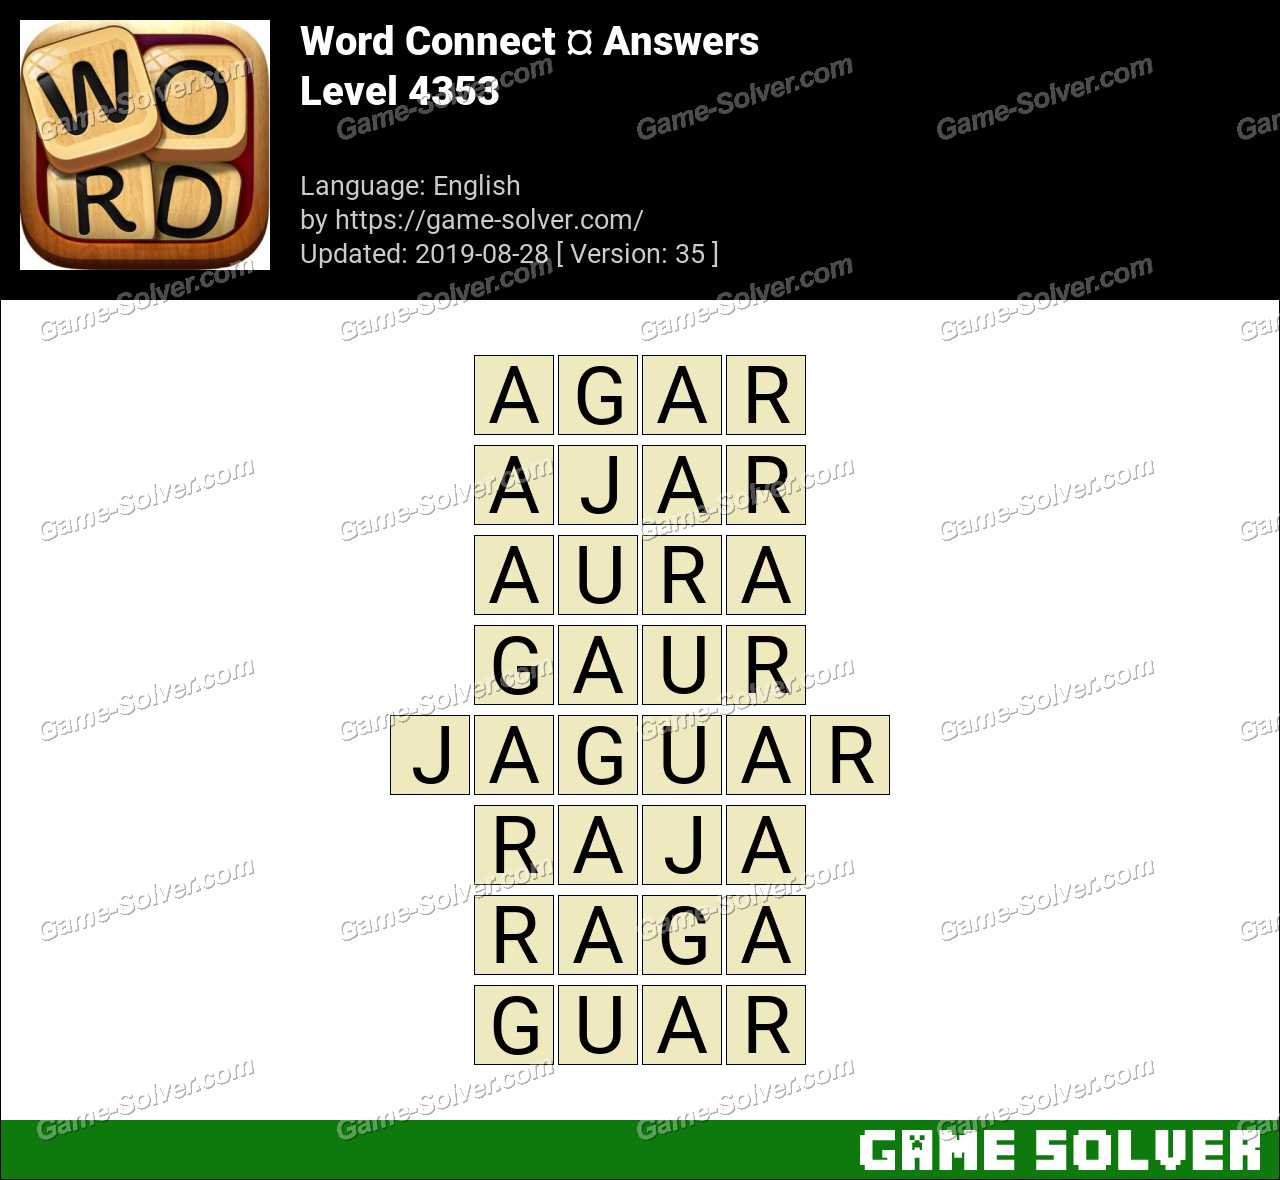 Word Connect Level 4353 Answers